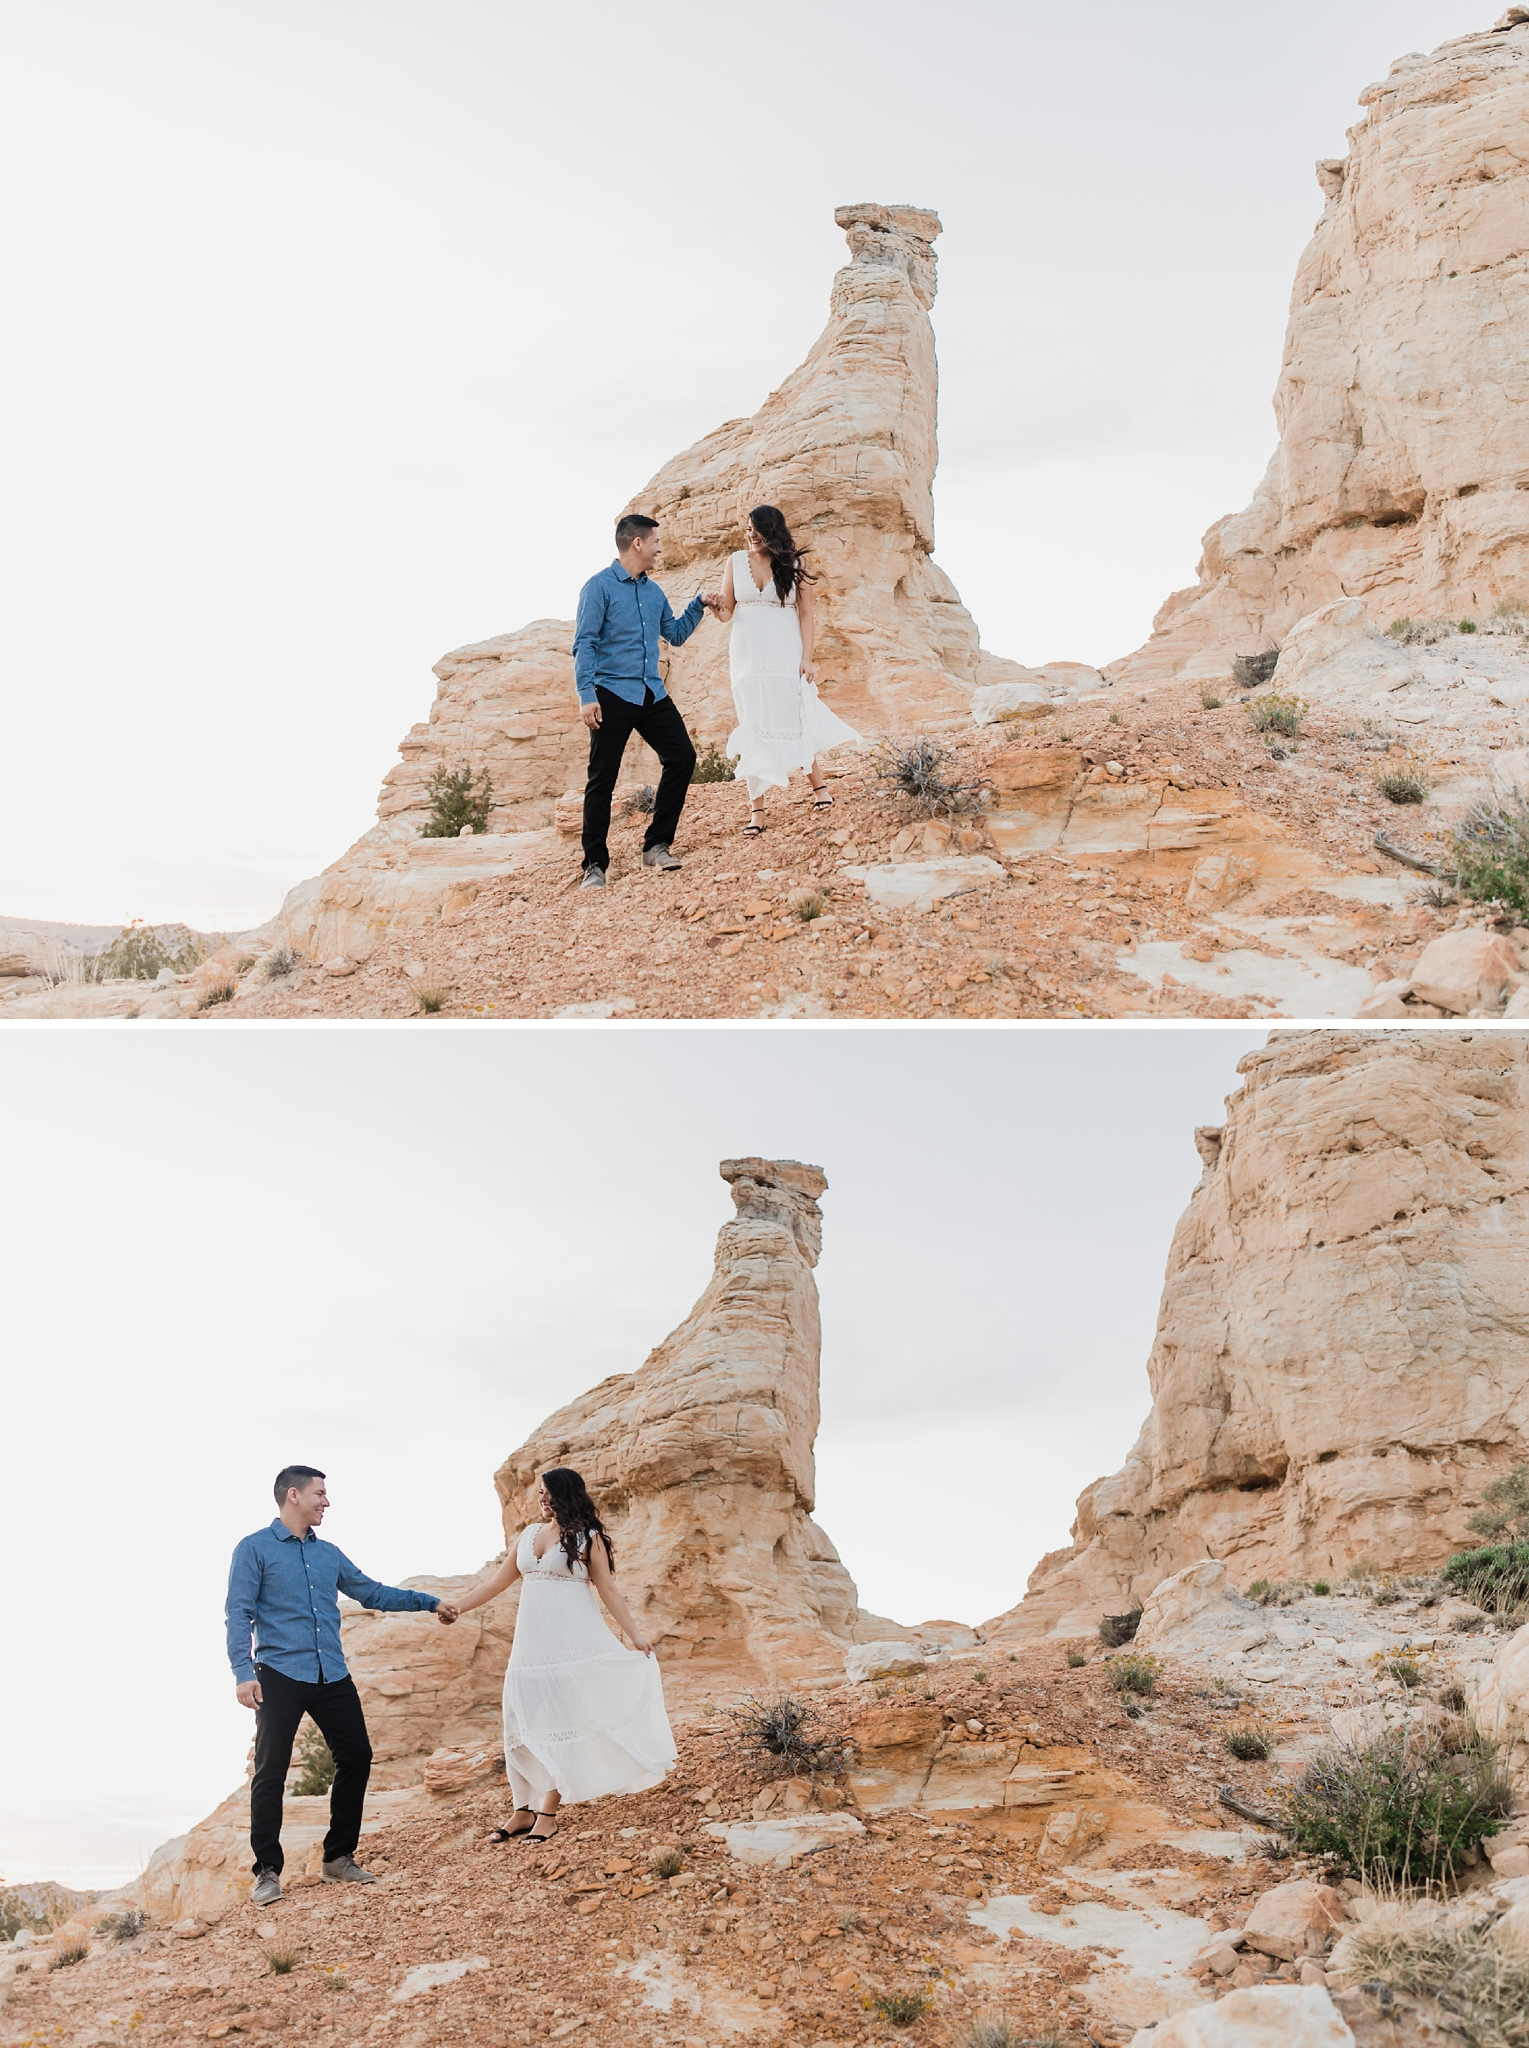 Alicia+lucia+photography+-+albuquerque+wedding+photographer+-+santa+fe+wedding+photography+-+new+mexico+wedding+photographer+-+new+mexico+wedding+-+new+mexico+engagement+-+white+mesa+engagement+-+desert+engagement_0011.jpg